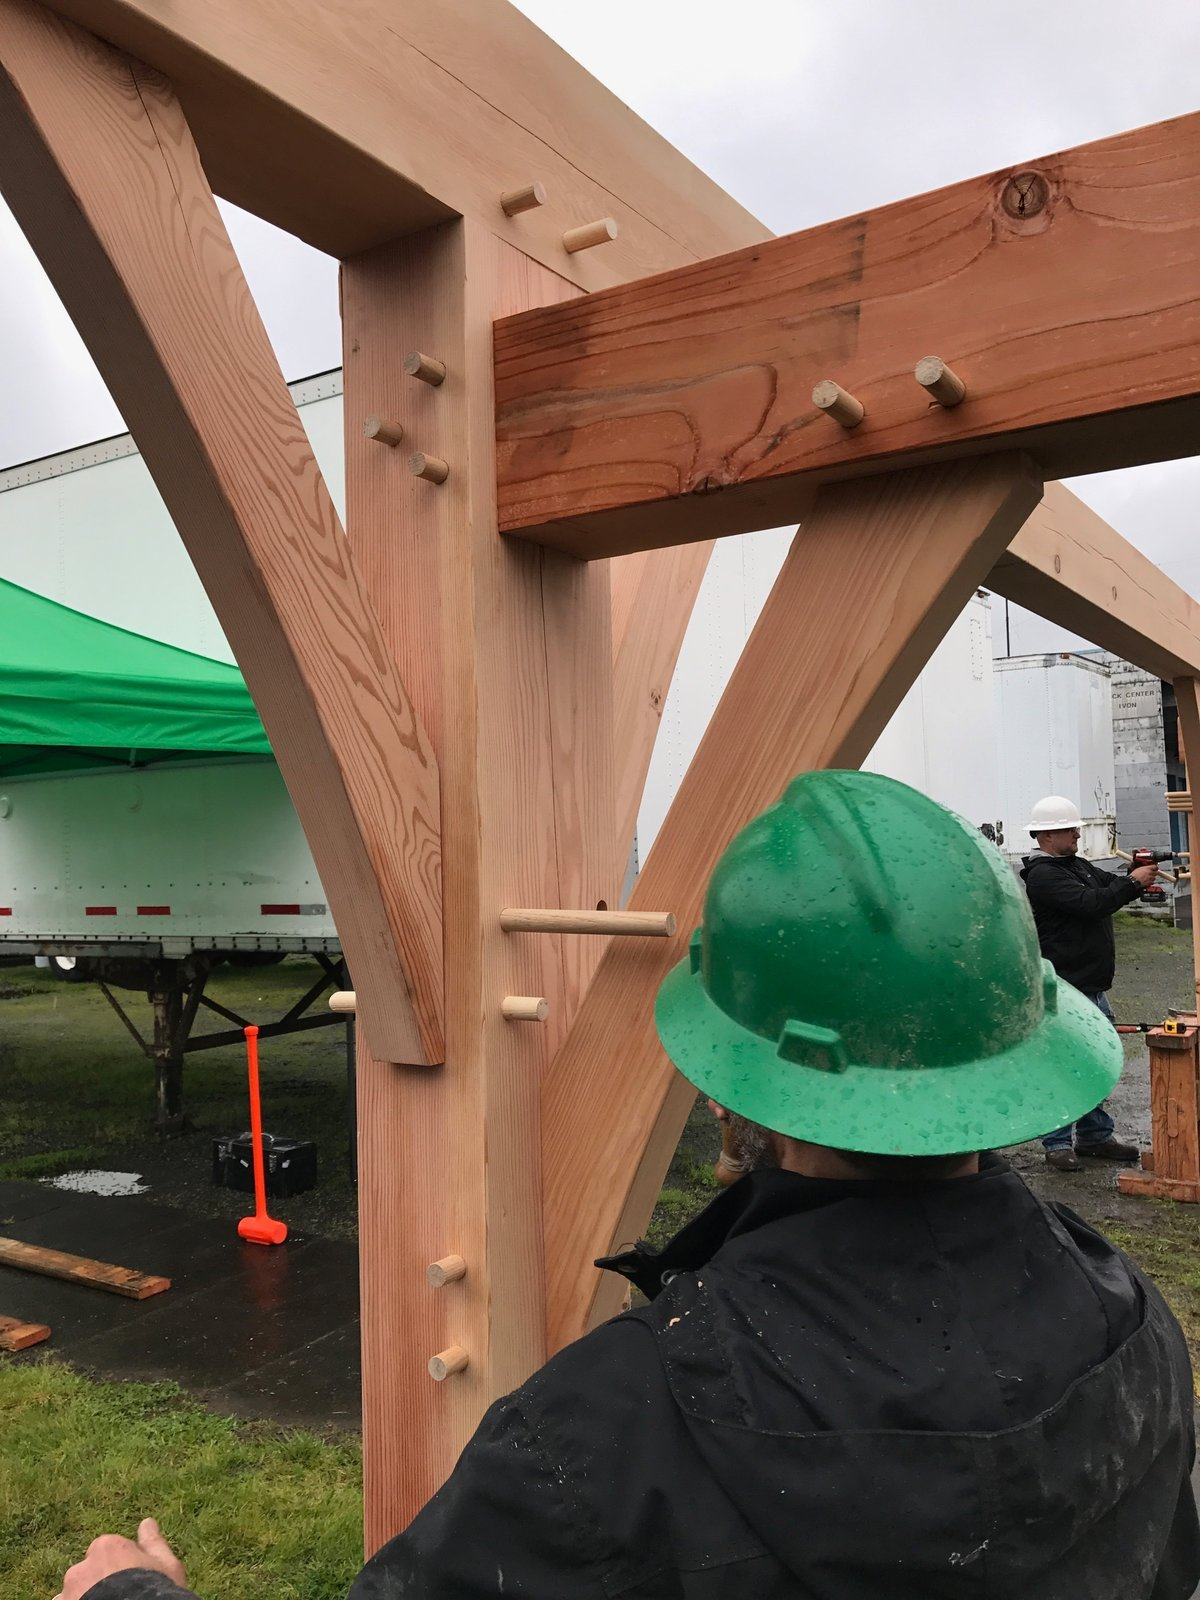 New Energy Works Timberframers event raised a structure with solar panels (from Snychro Solar) in place at the big timber event: Thinking Outside the Frame: Traditional Craft Melds with Modern Technology.